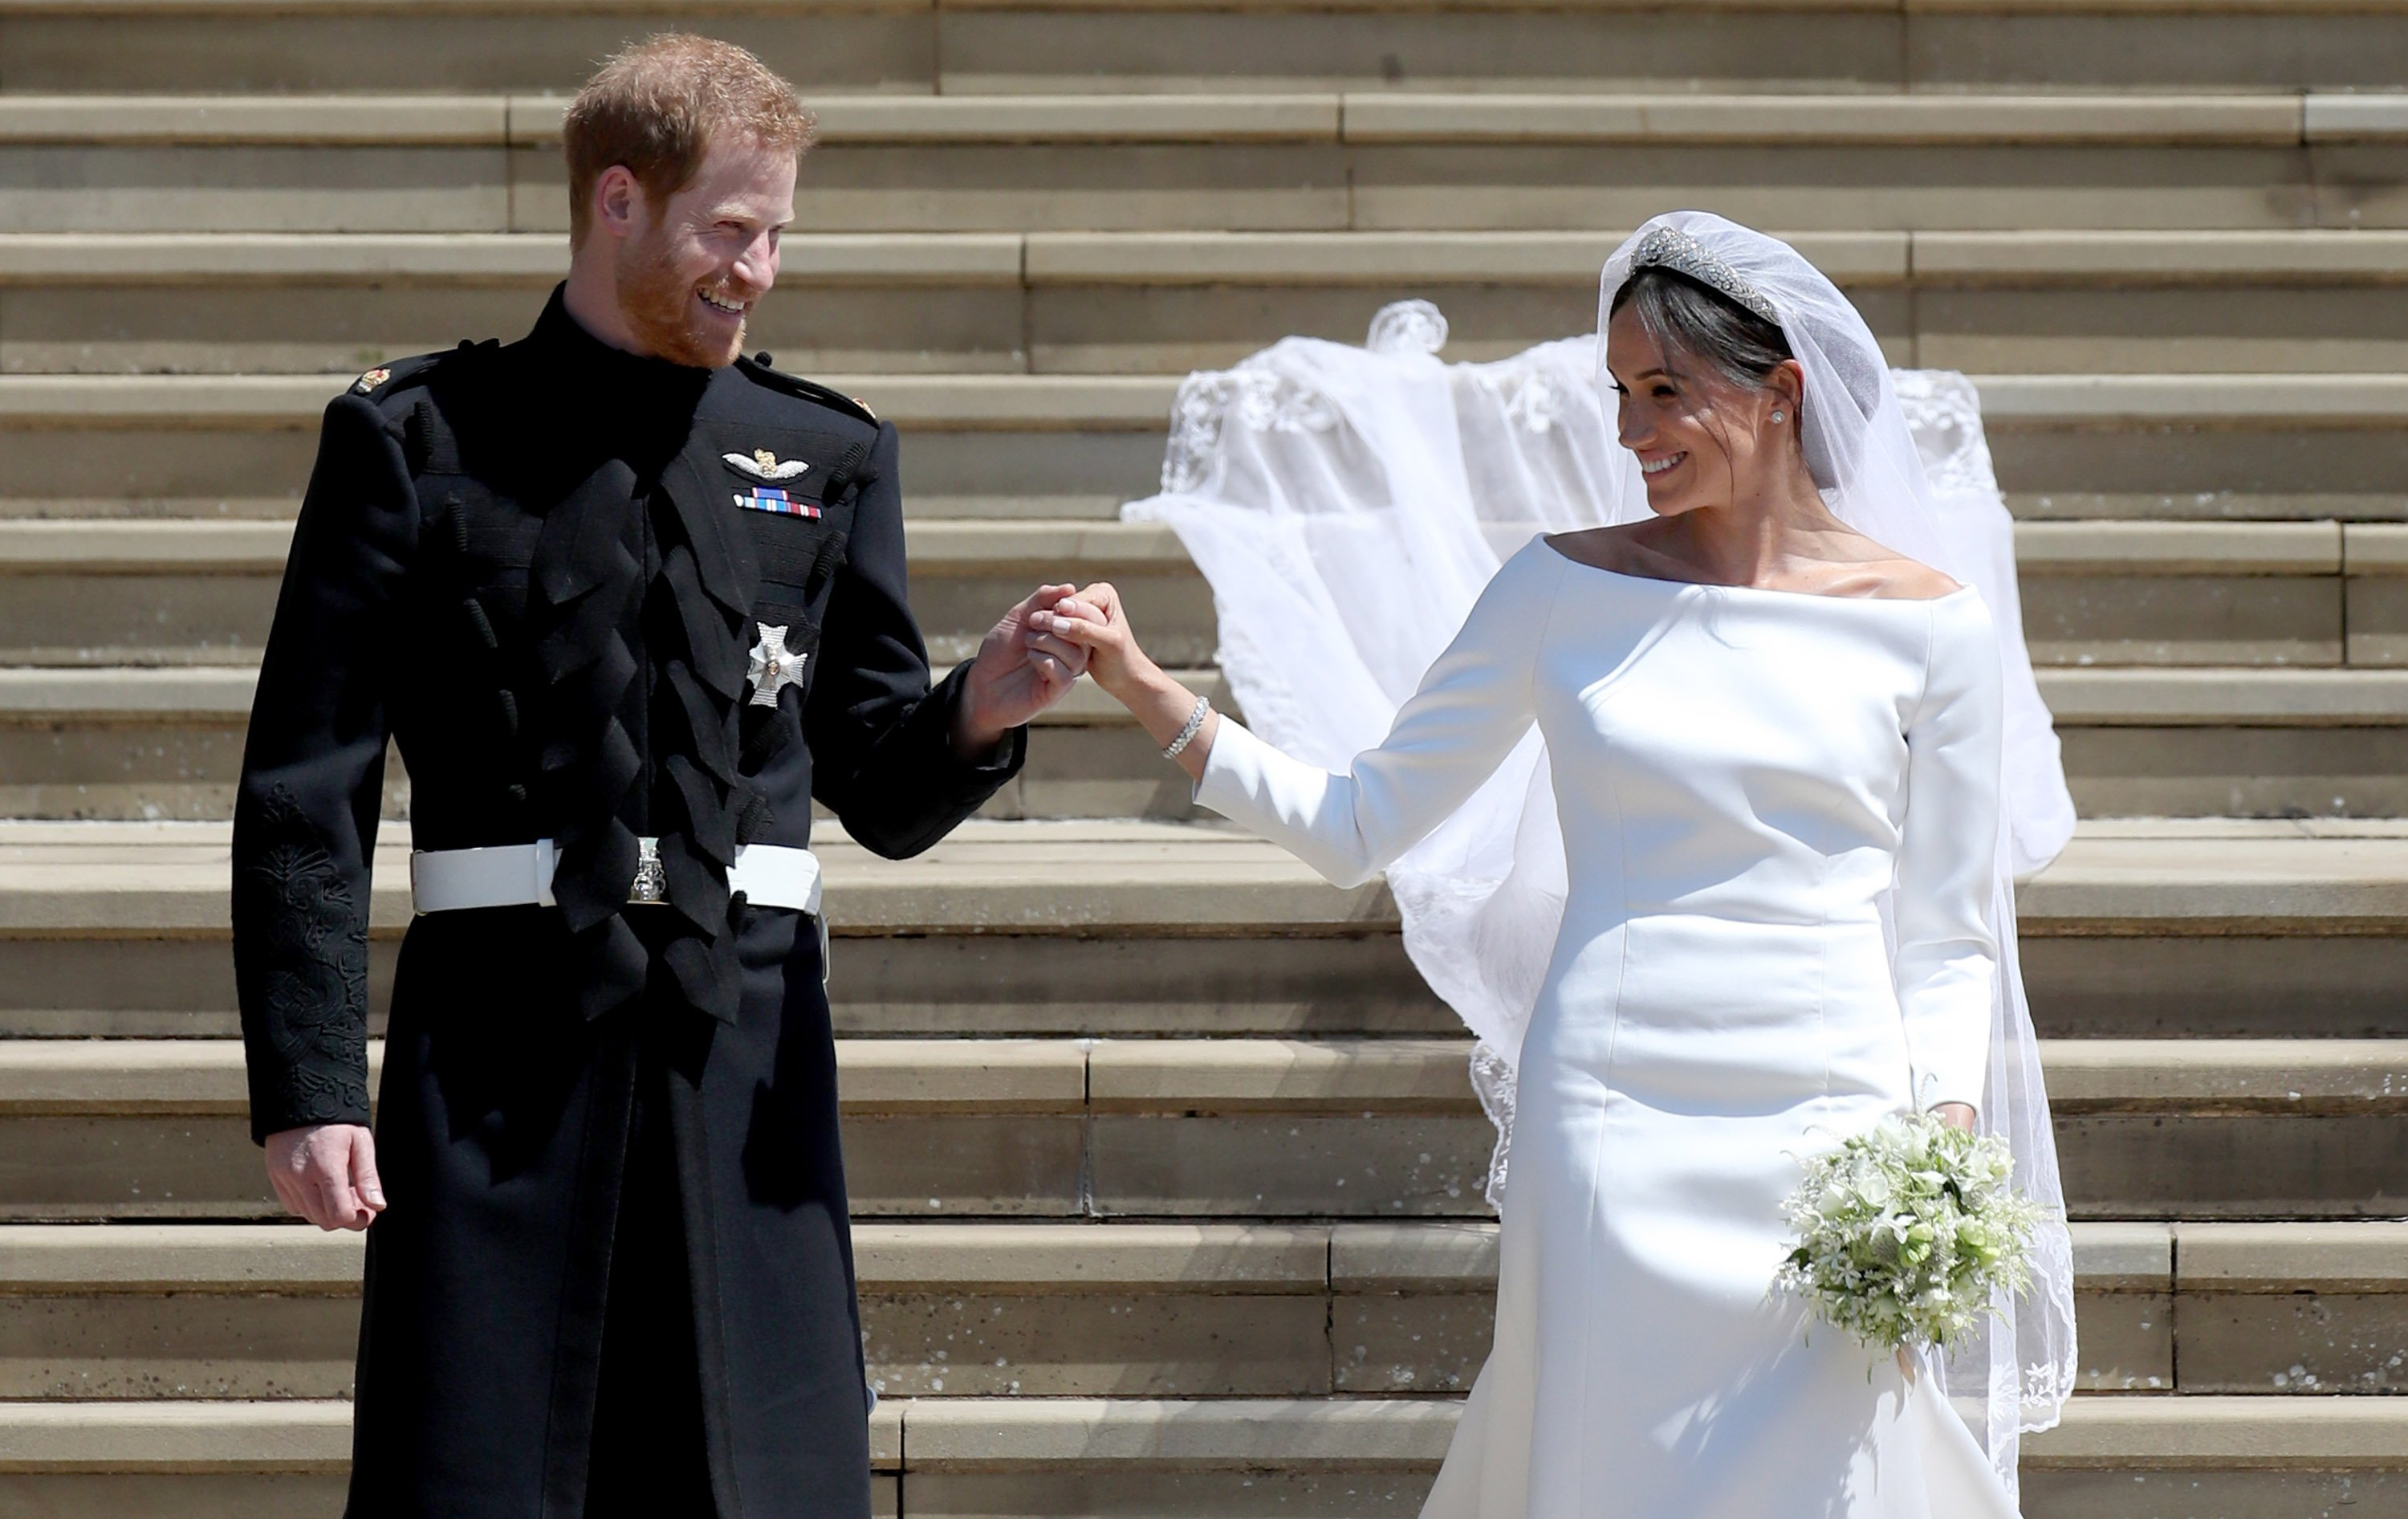 Prince Harry and Meghan Markle in May 2019 at their royal wedding | Photo: Getty Images